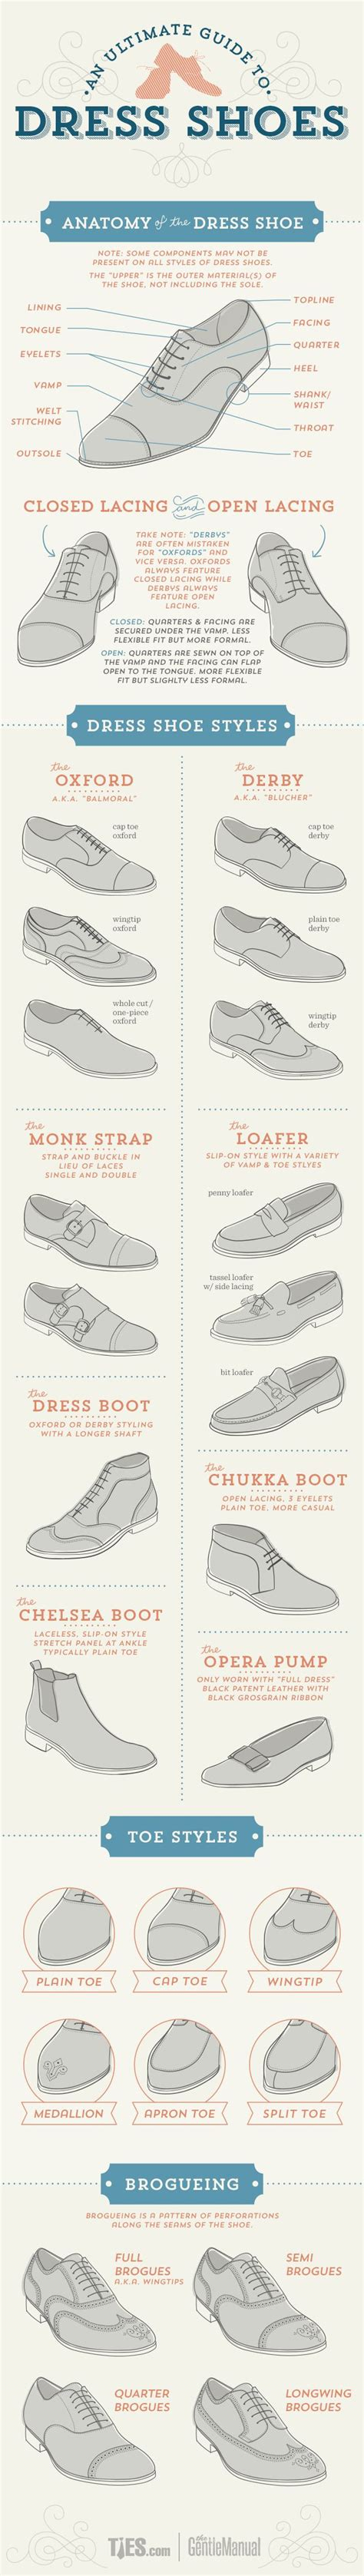 an ultimate guide to dress shoes infographic dressshoes